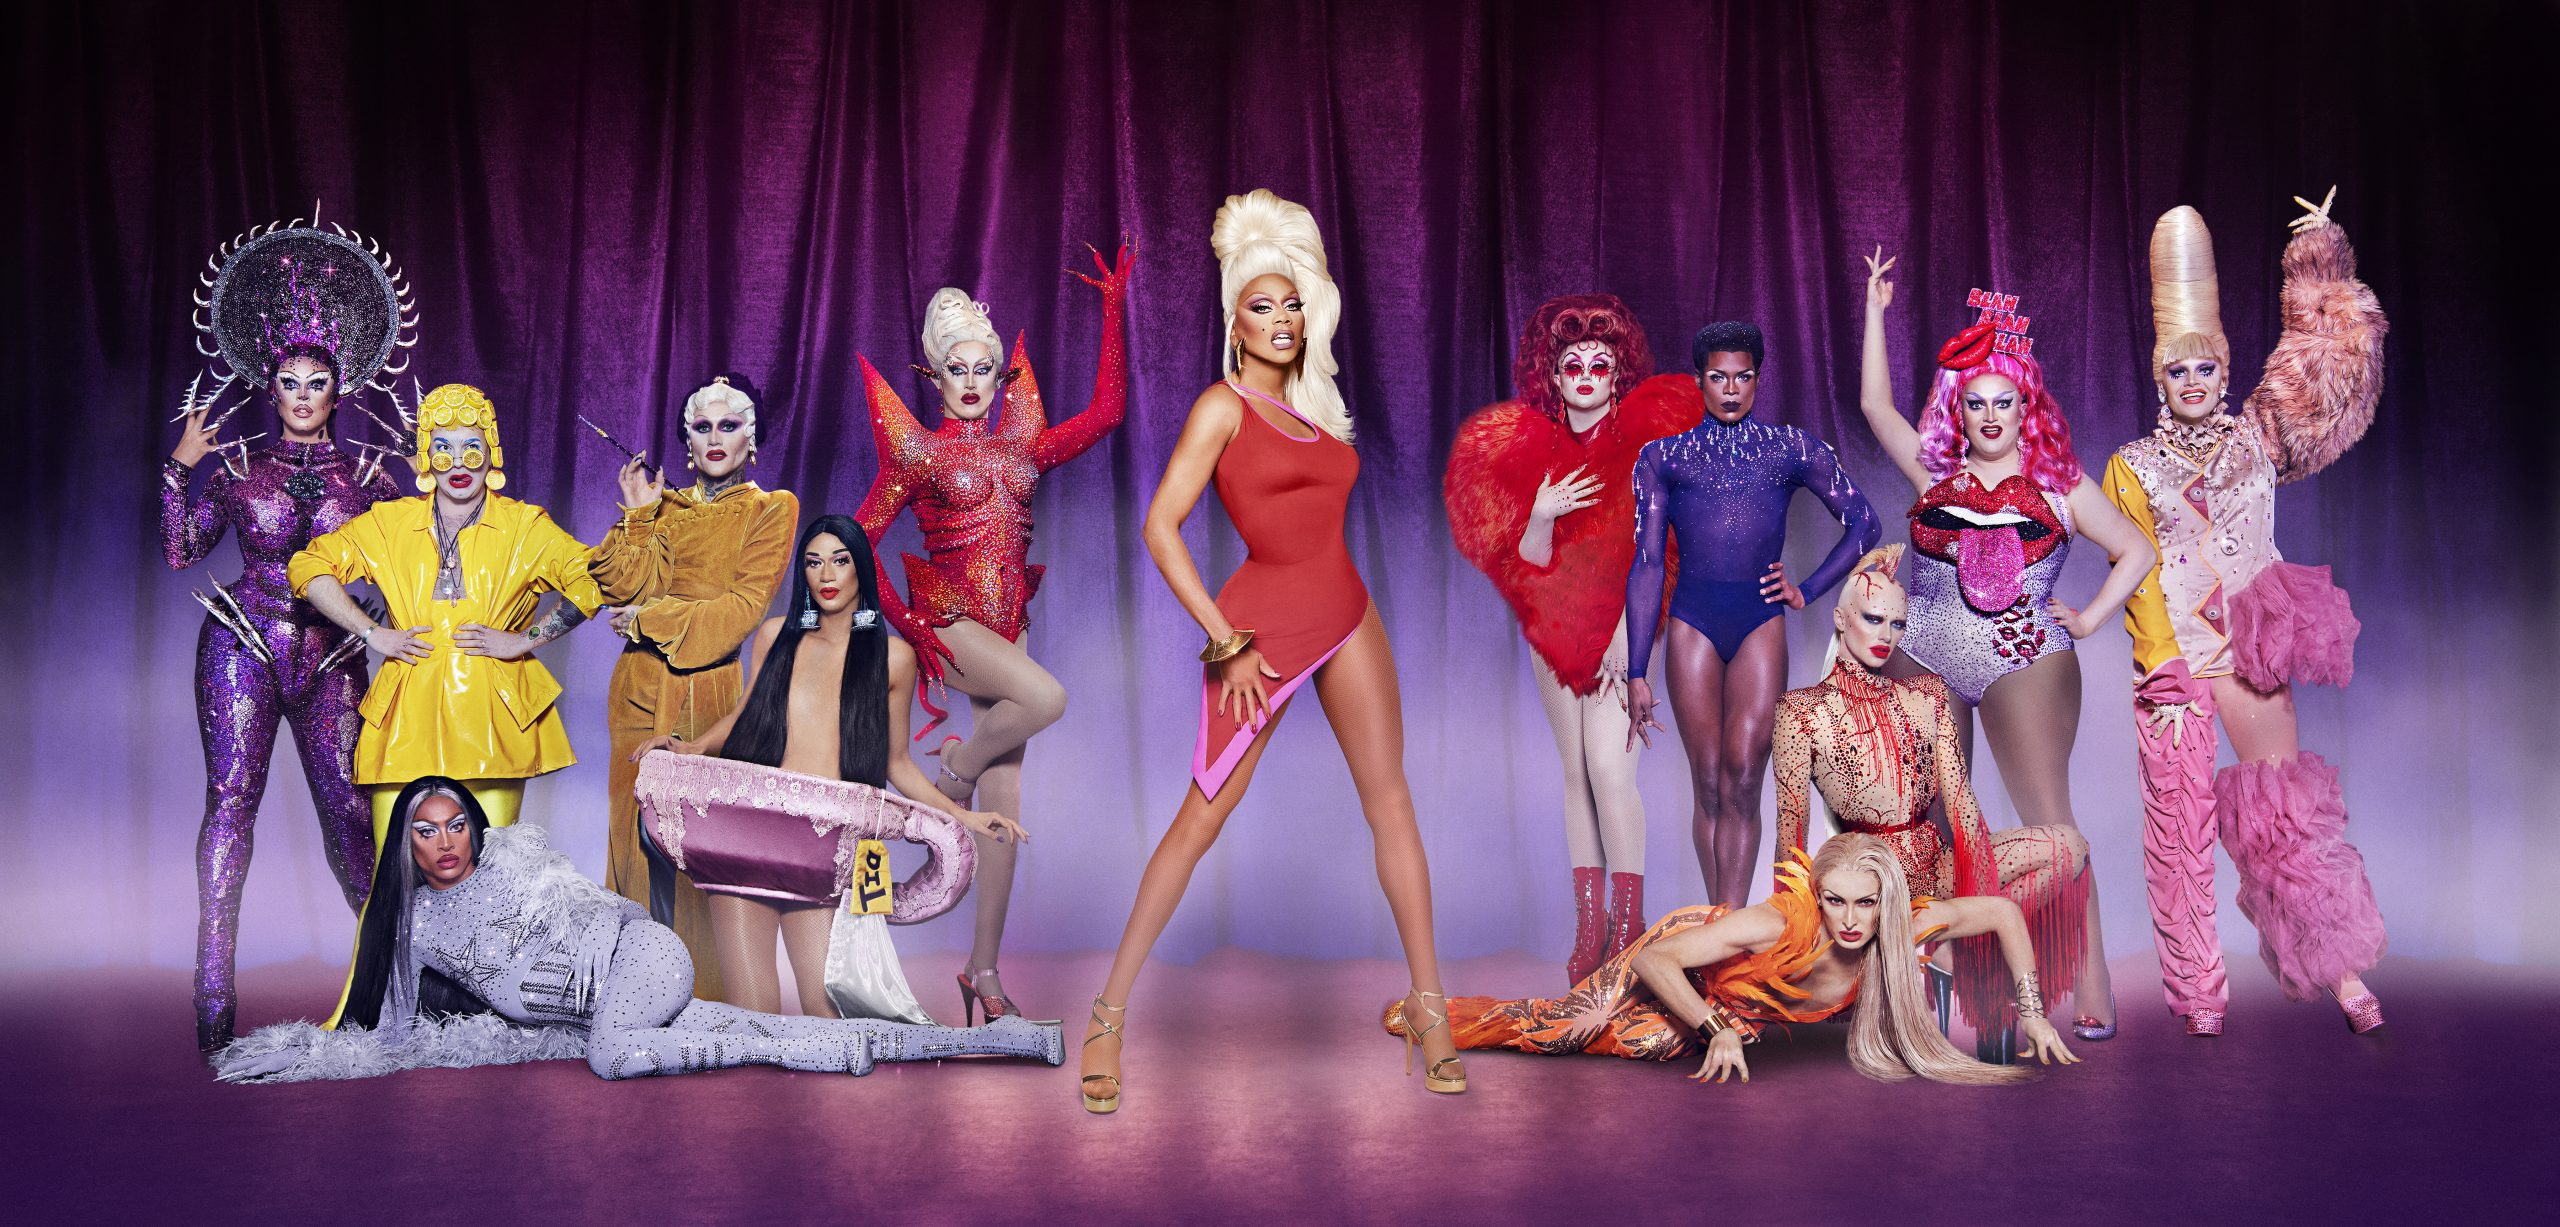 Ru Paul's Drag Race UK